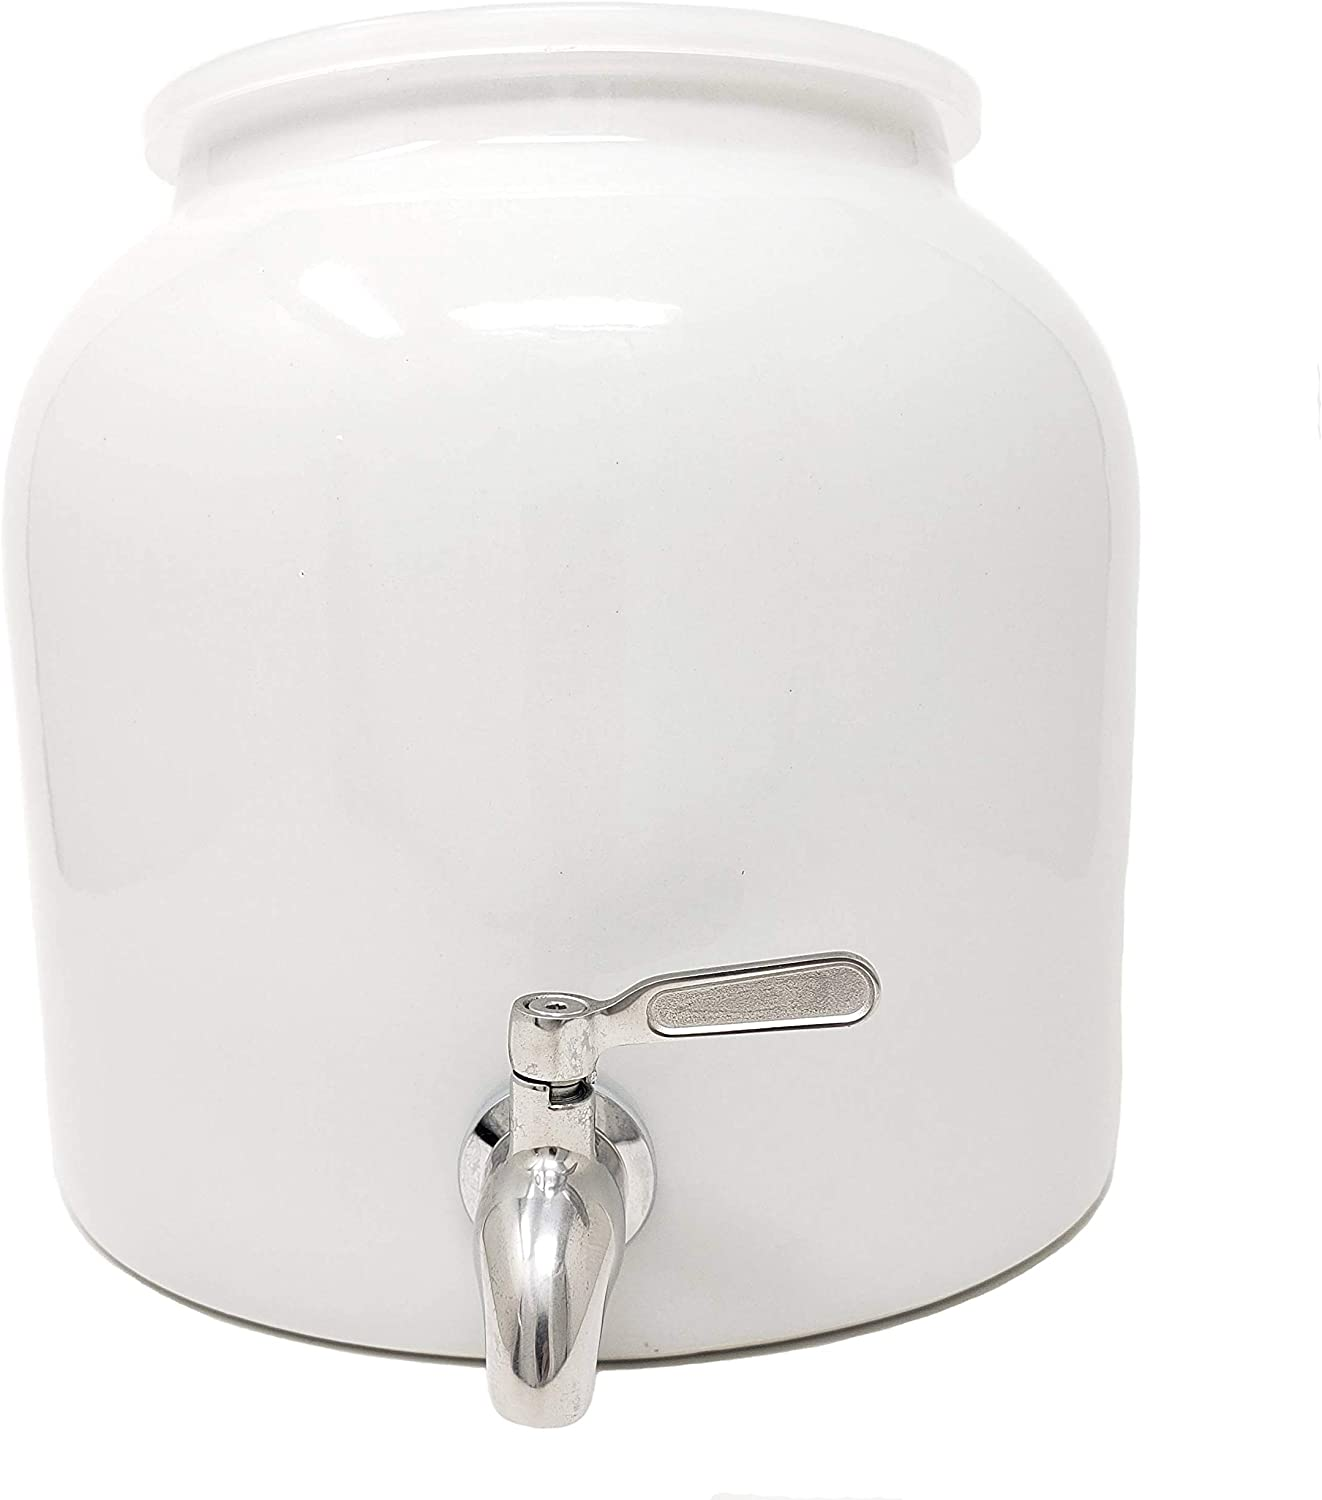 White Porcelain Water Dispenser Crock with Stainless Steel Faucet